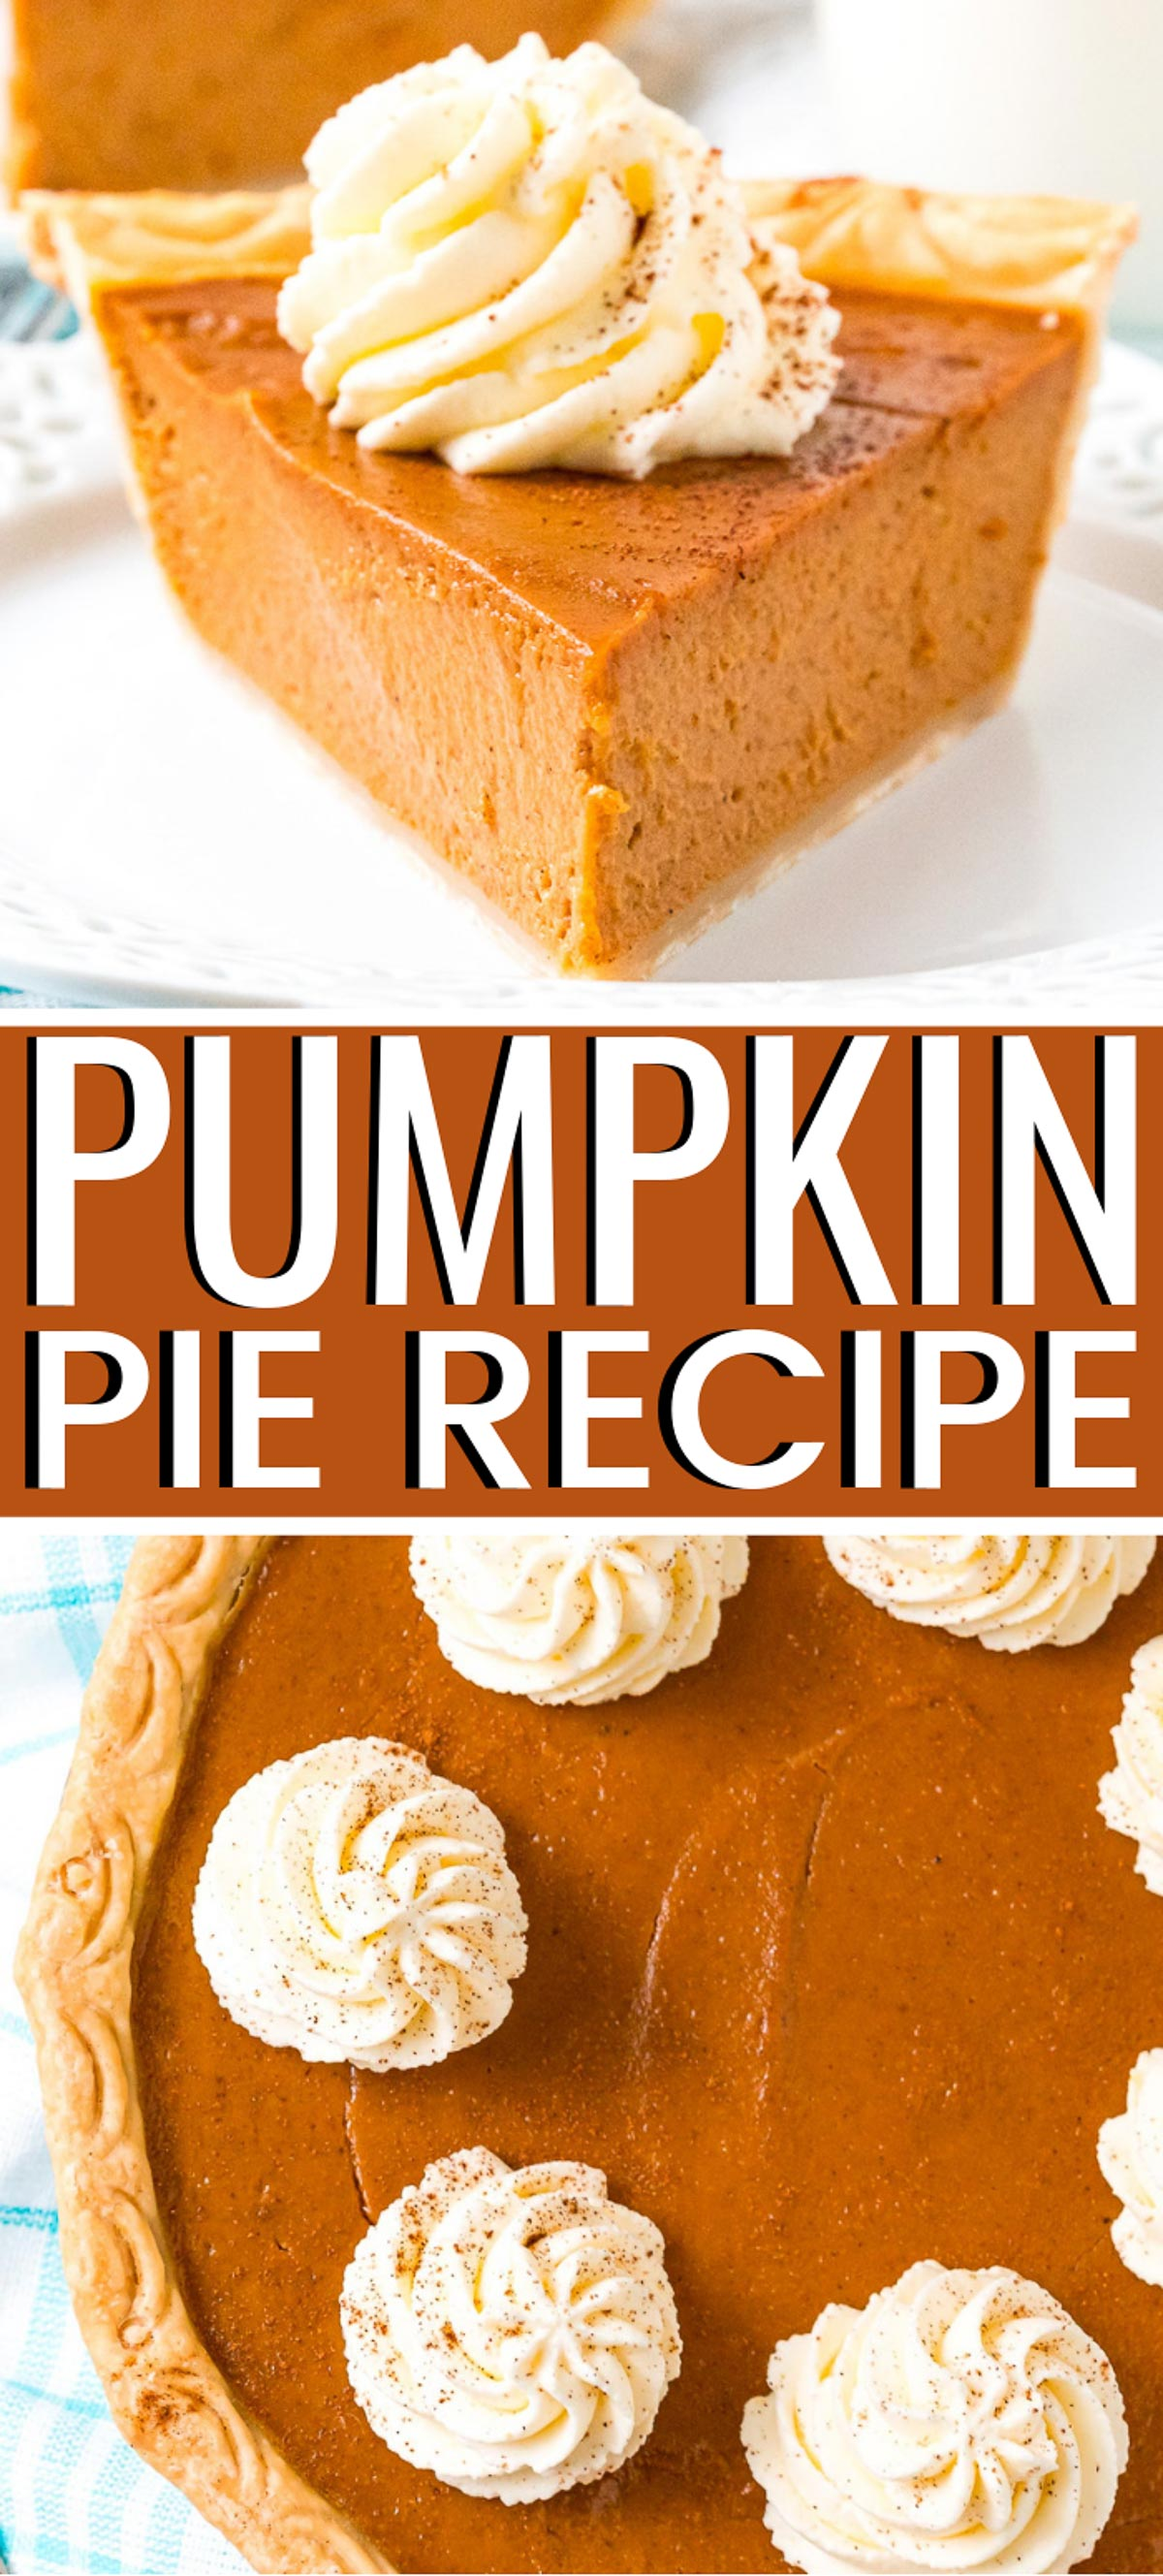 This Pumpkin Pie Recipe is perfect for fall and Thanksgiving! A smooth and creamy spiced pumpkin custard filling baked in a flaky pie crust. via @sugarandsoulco